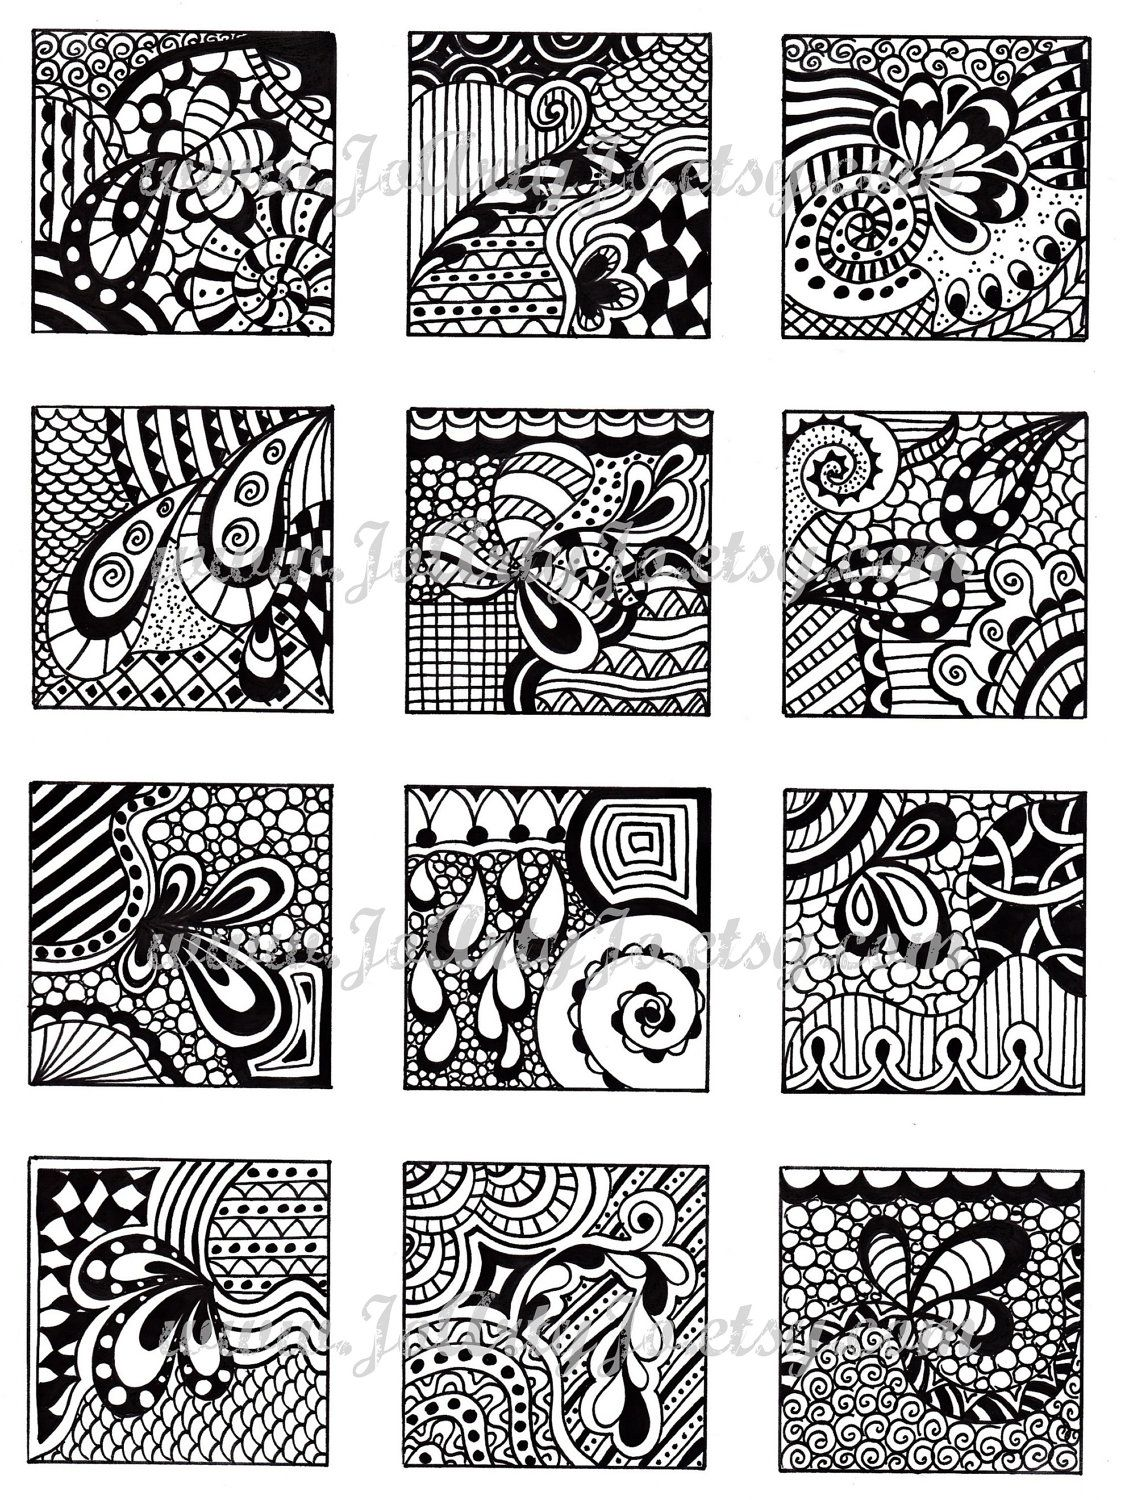 Digital Collage Sheet Black And White Images Abstract Zentangle